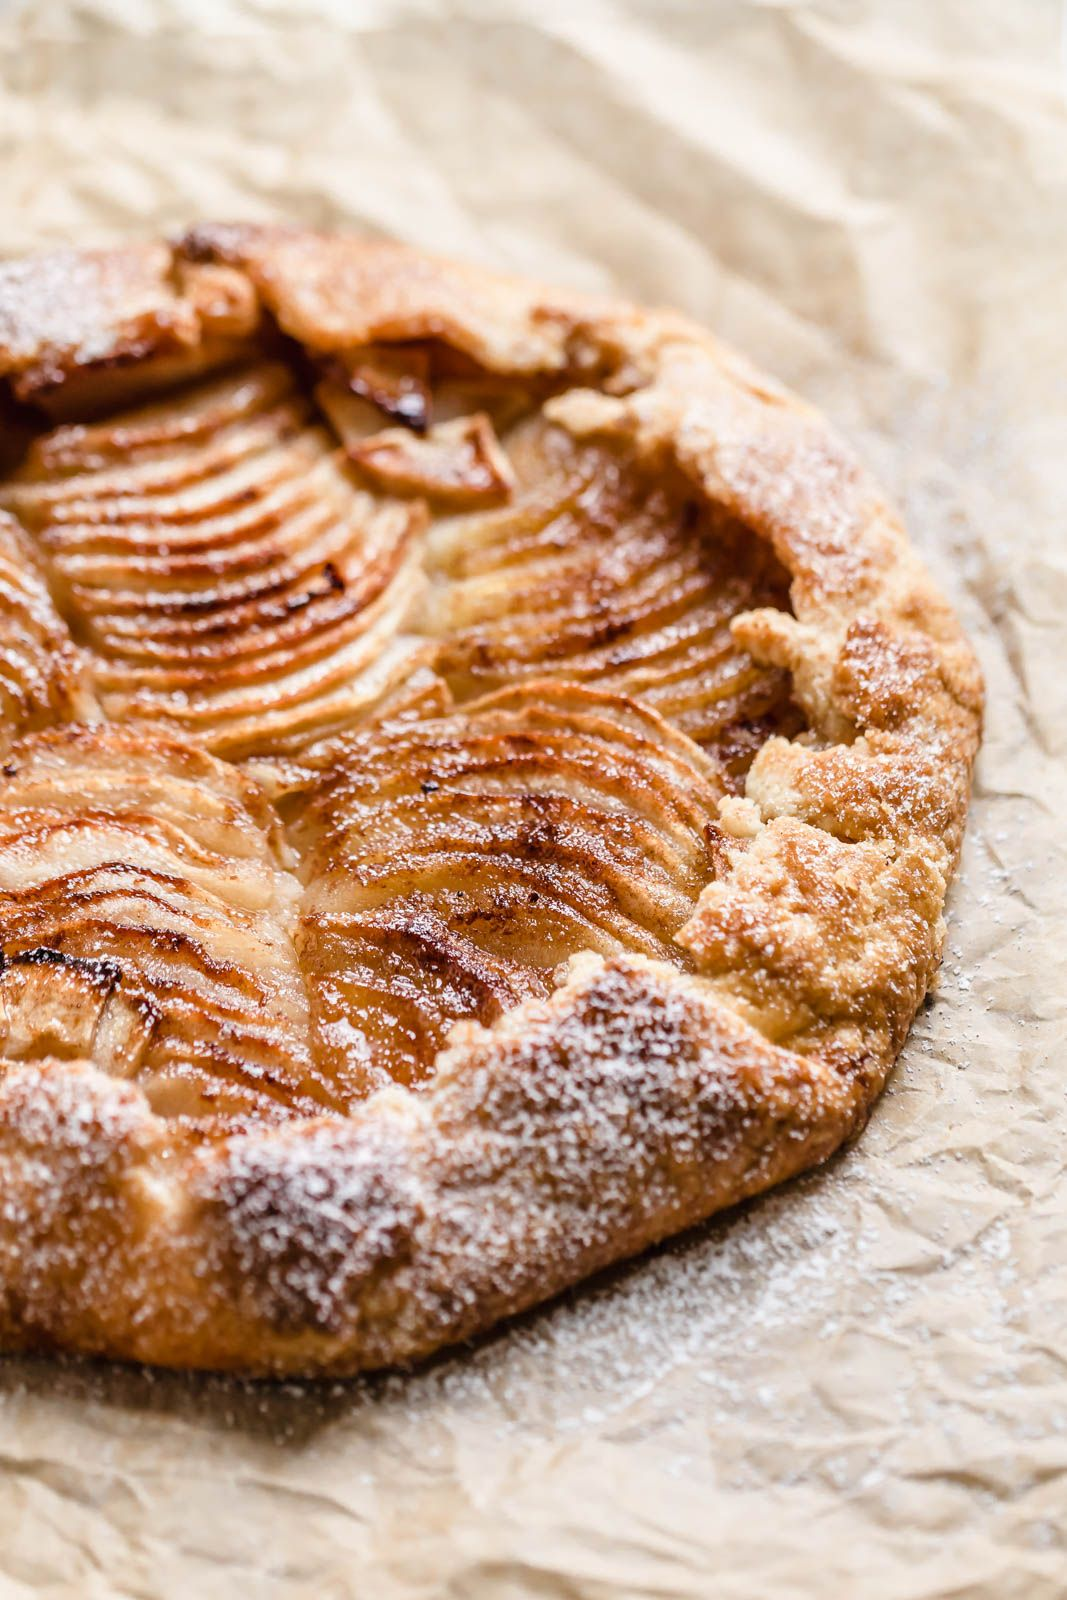 Easy Peazy Cinnamon Apple Galette - Broma Bakery